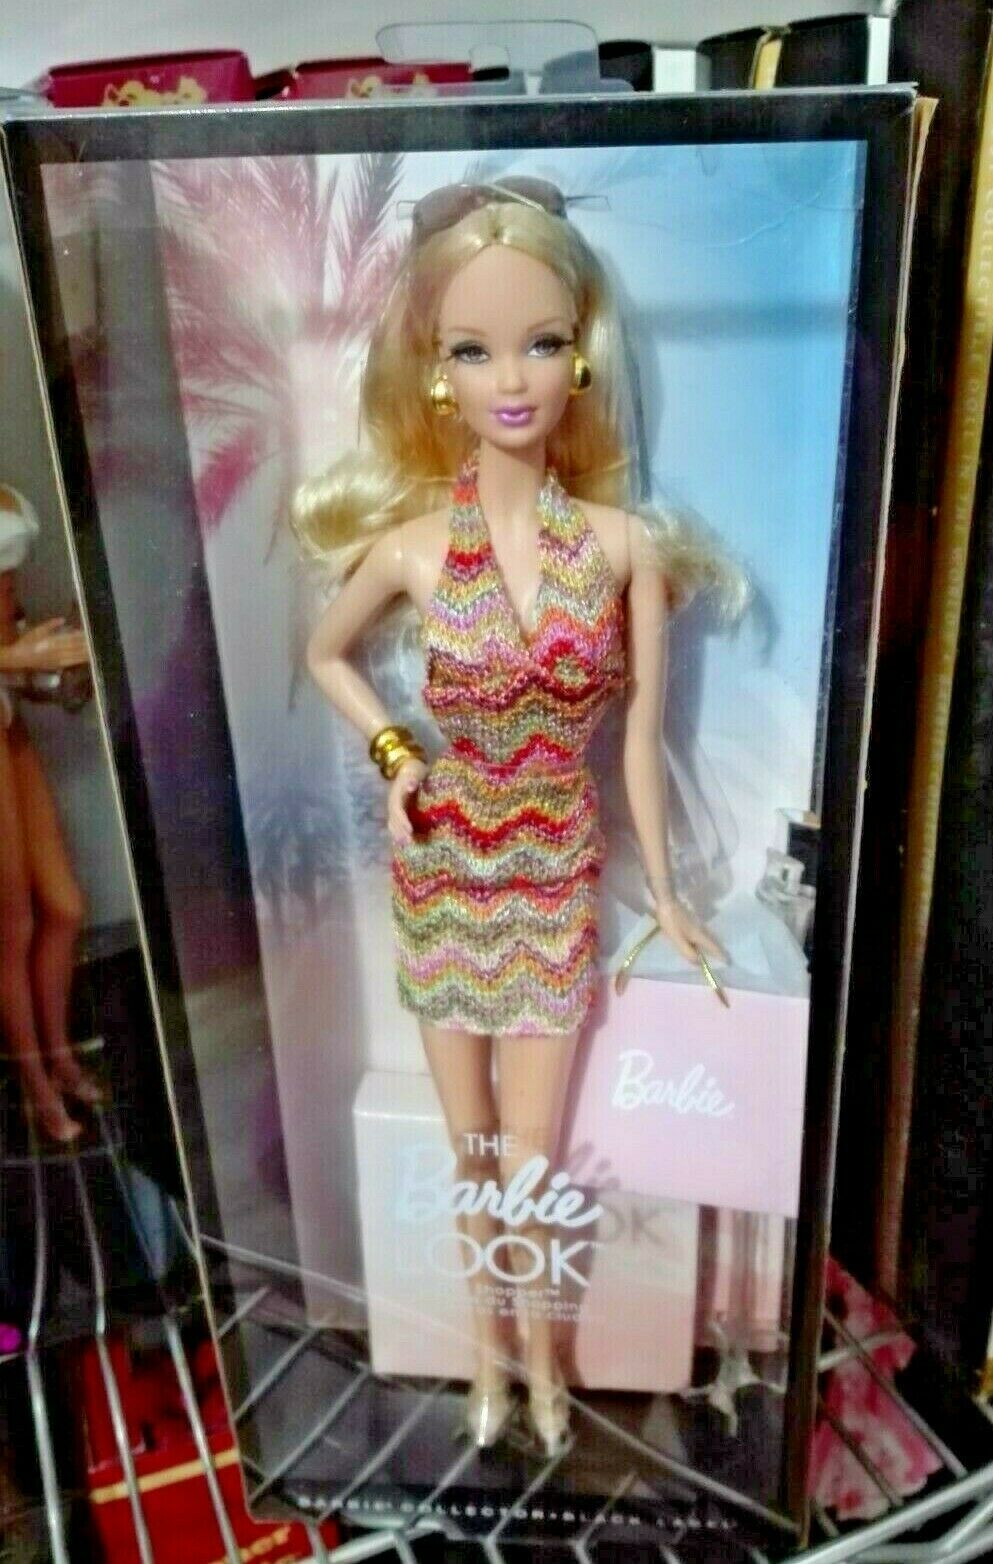 BARBIE LOOK CITY SHOPPER NRFB NRFB NRFB - schwarz LABEL model muse doll collection Mattel d7017a